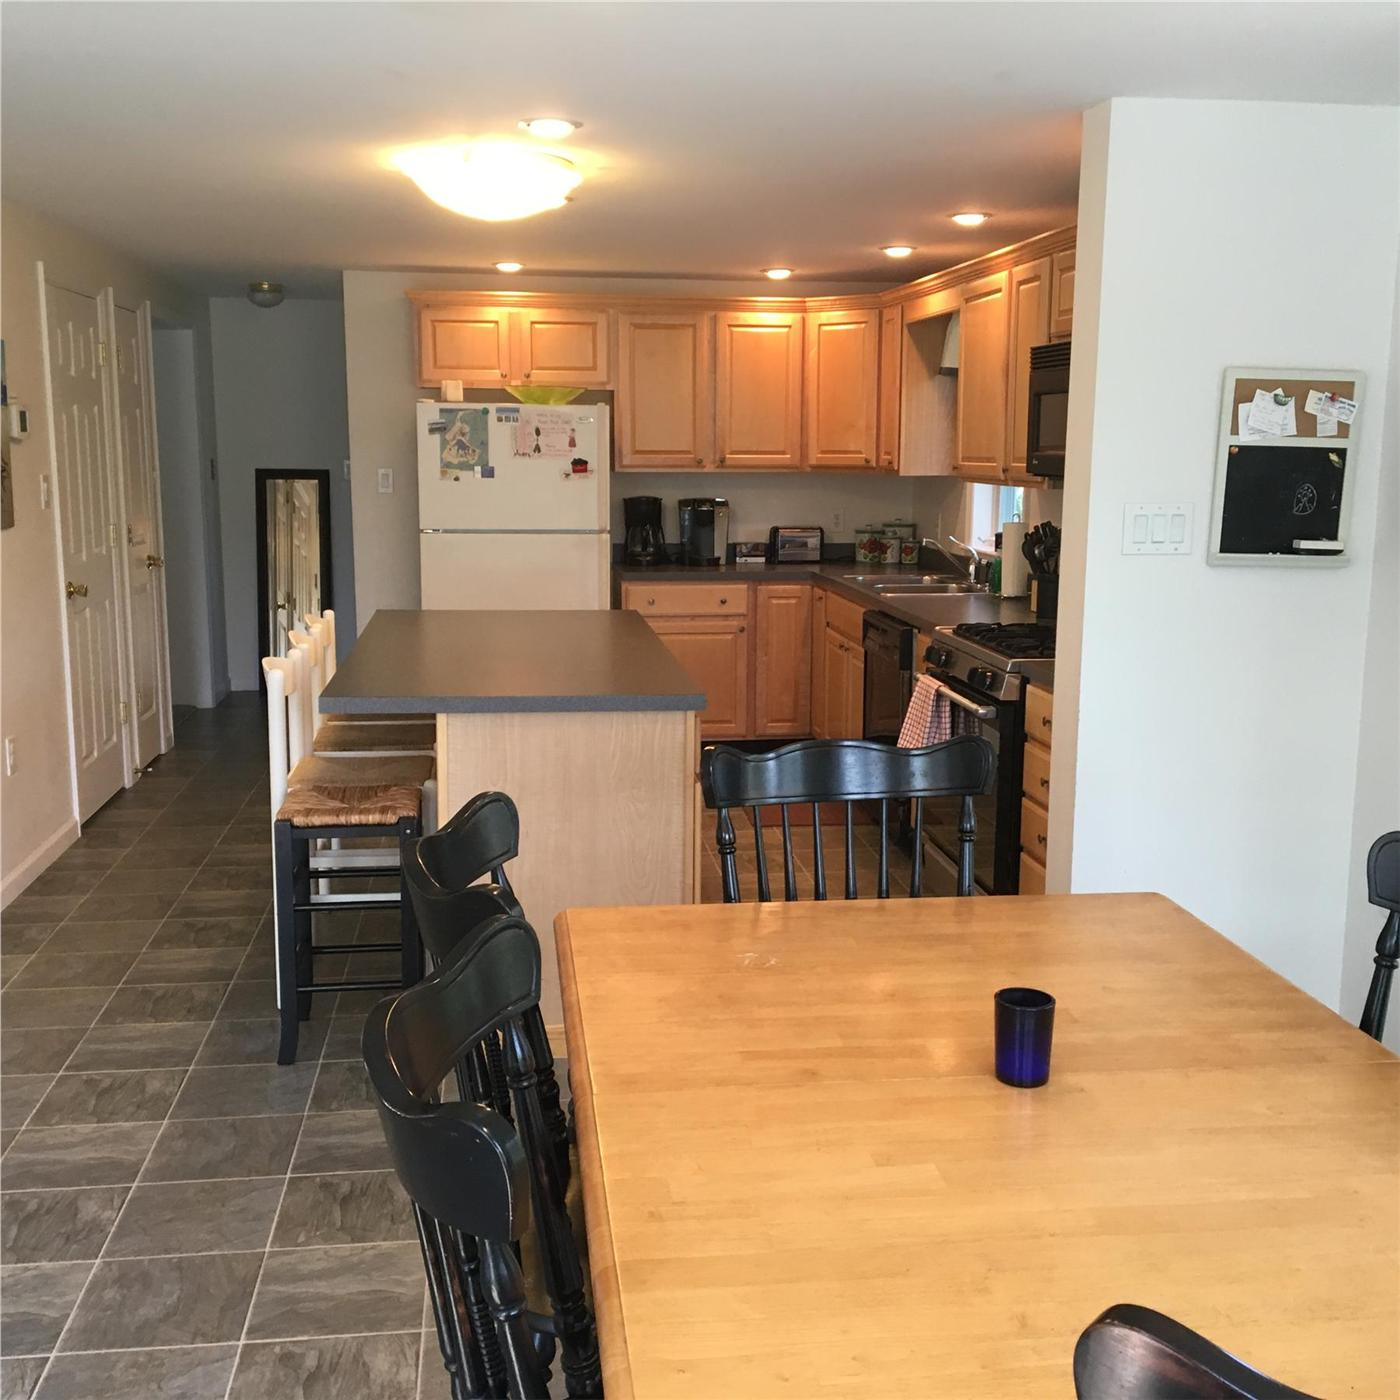 Orleans Vacation Rental Home In Cape Cod MA 02653, 8